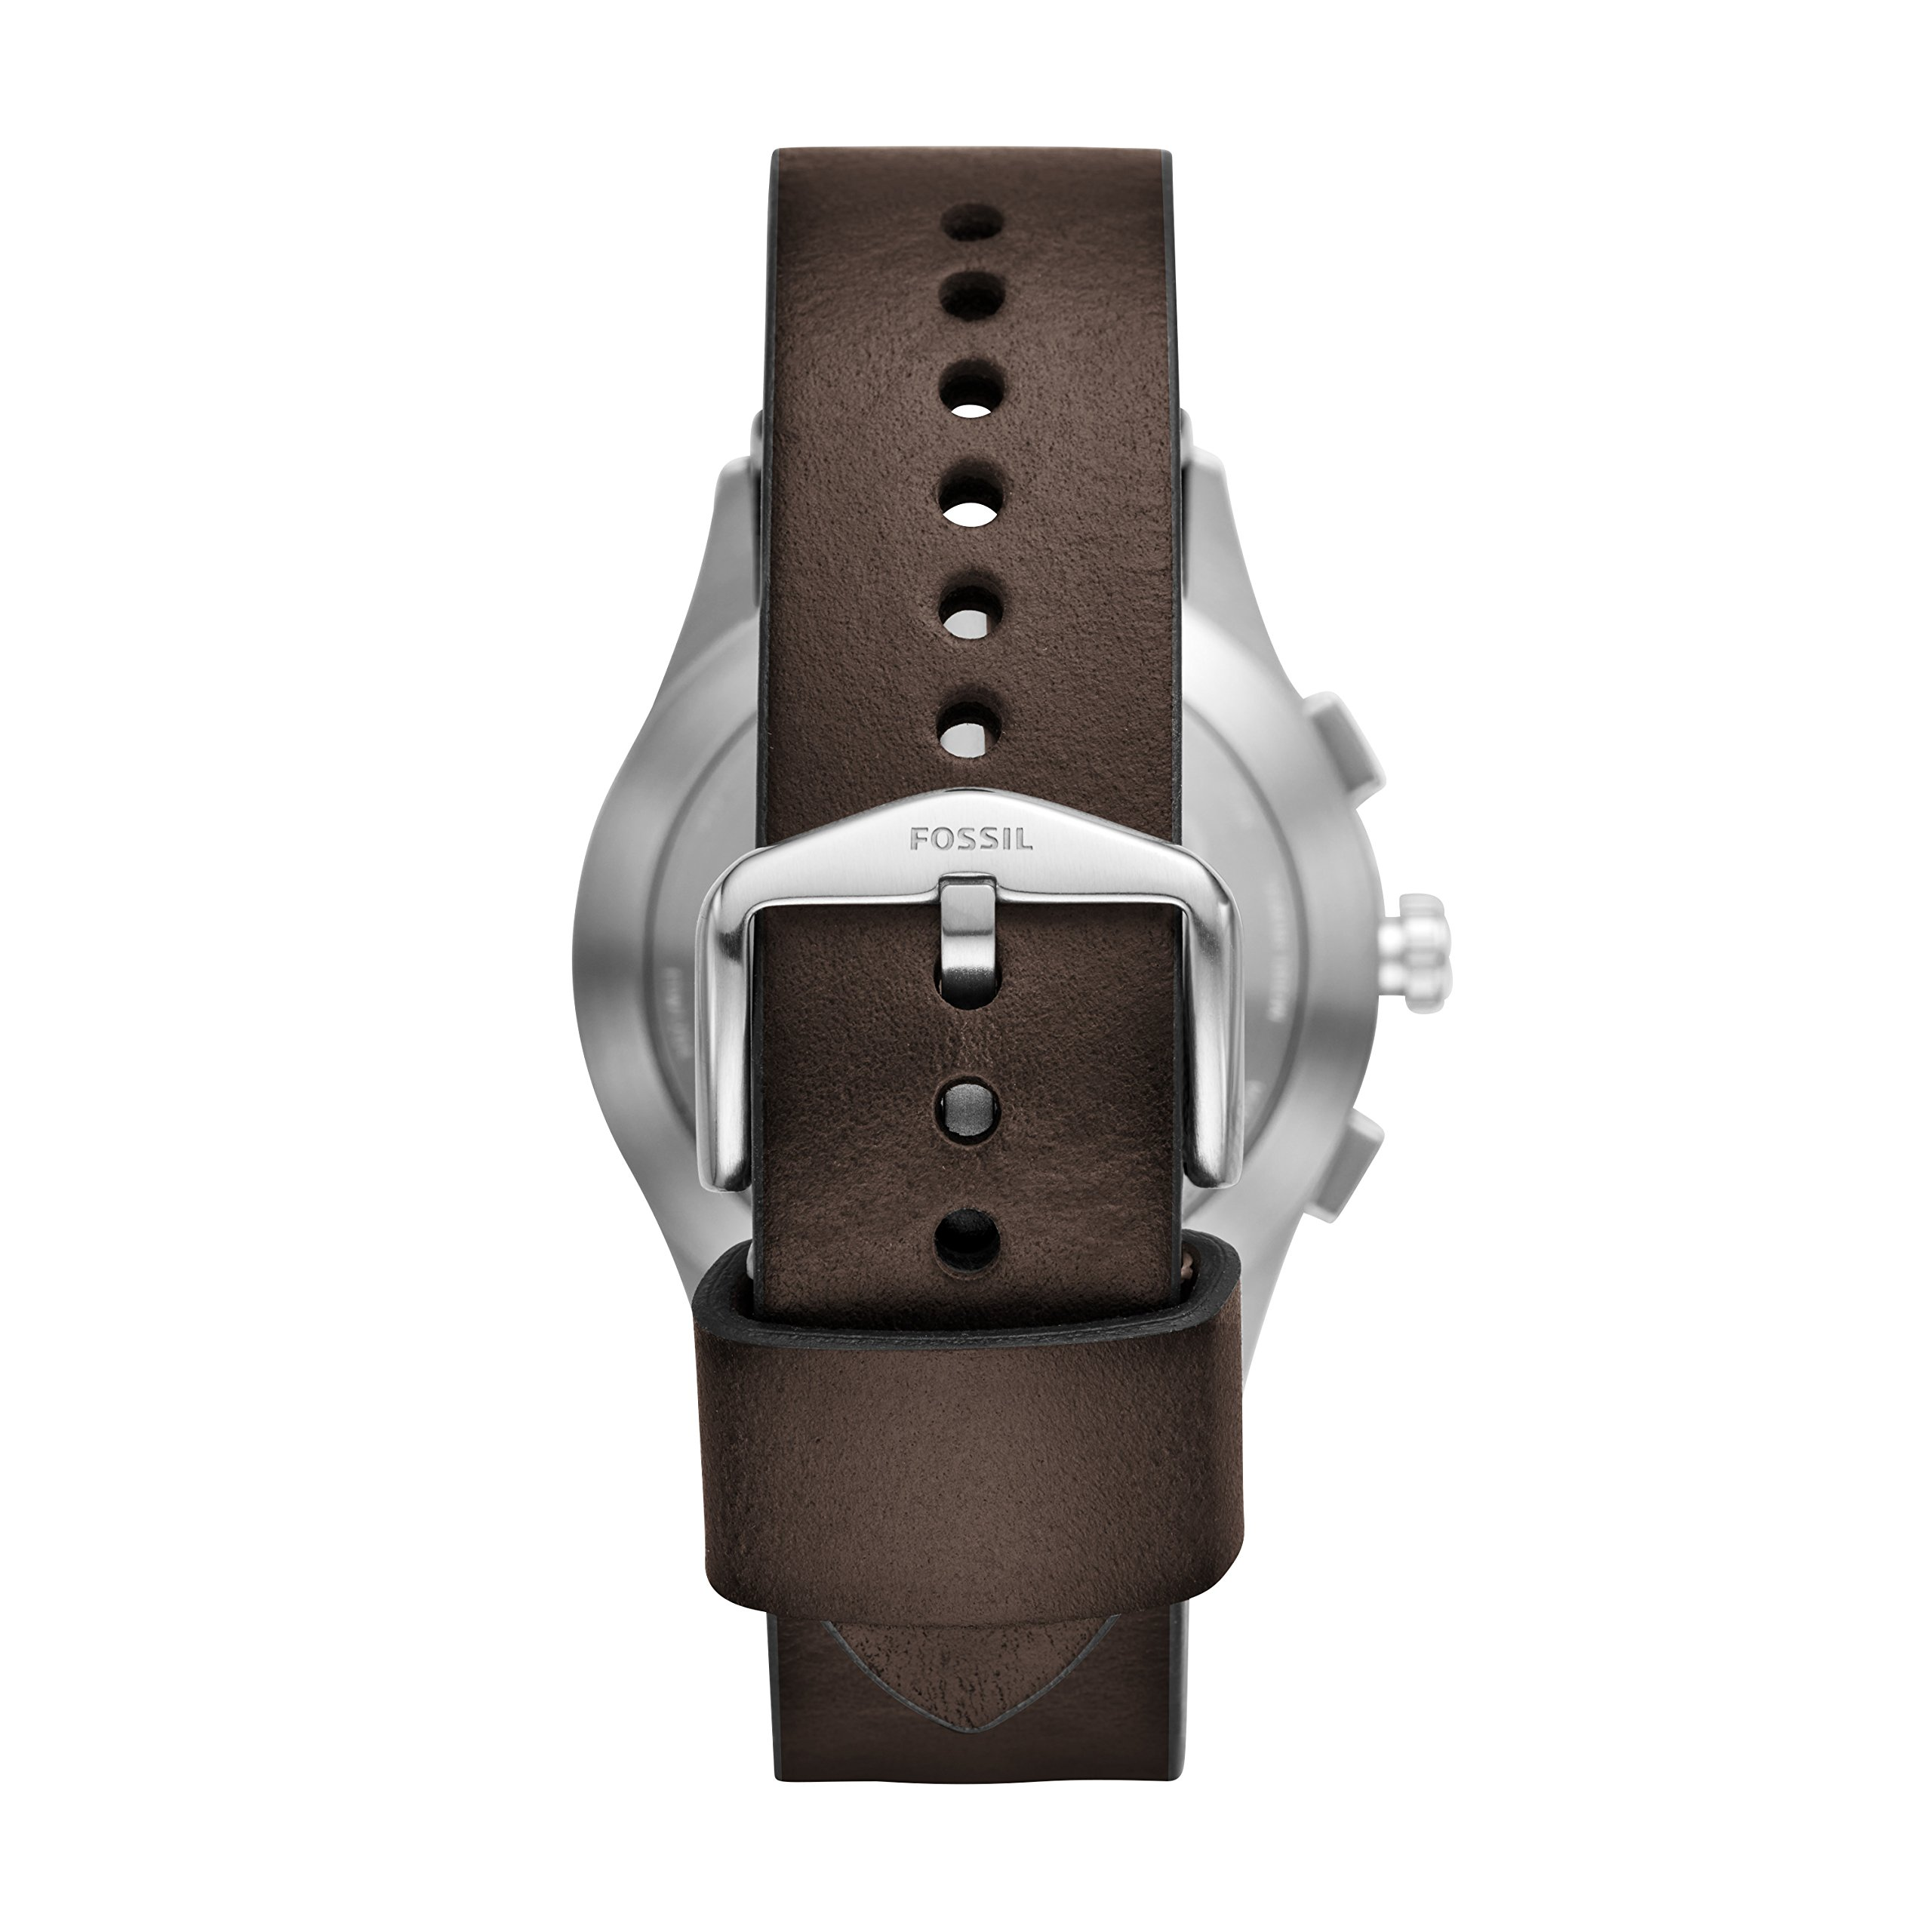 Fossil Hybrid Smartwatch - Q Activist Brown Leather FTW1204 by Fossil (Image #2)